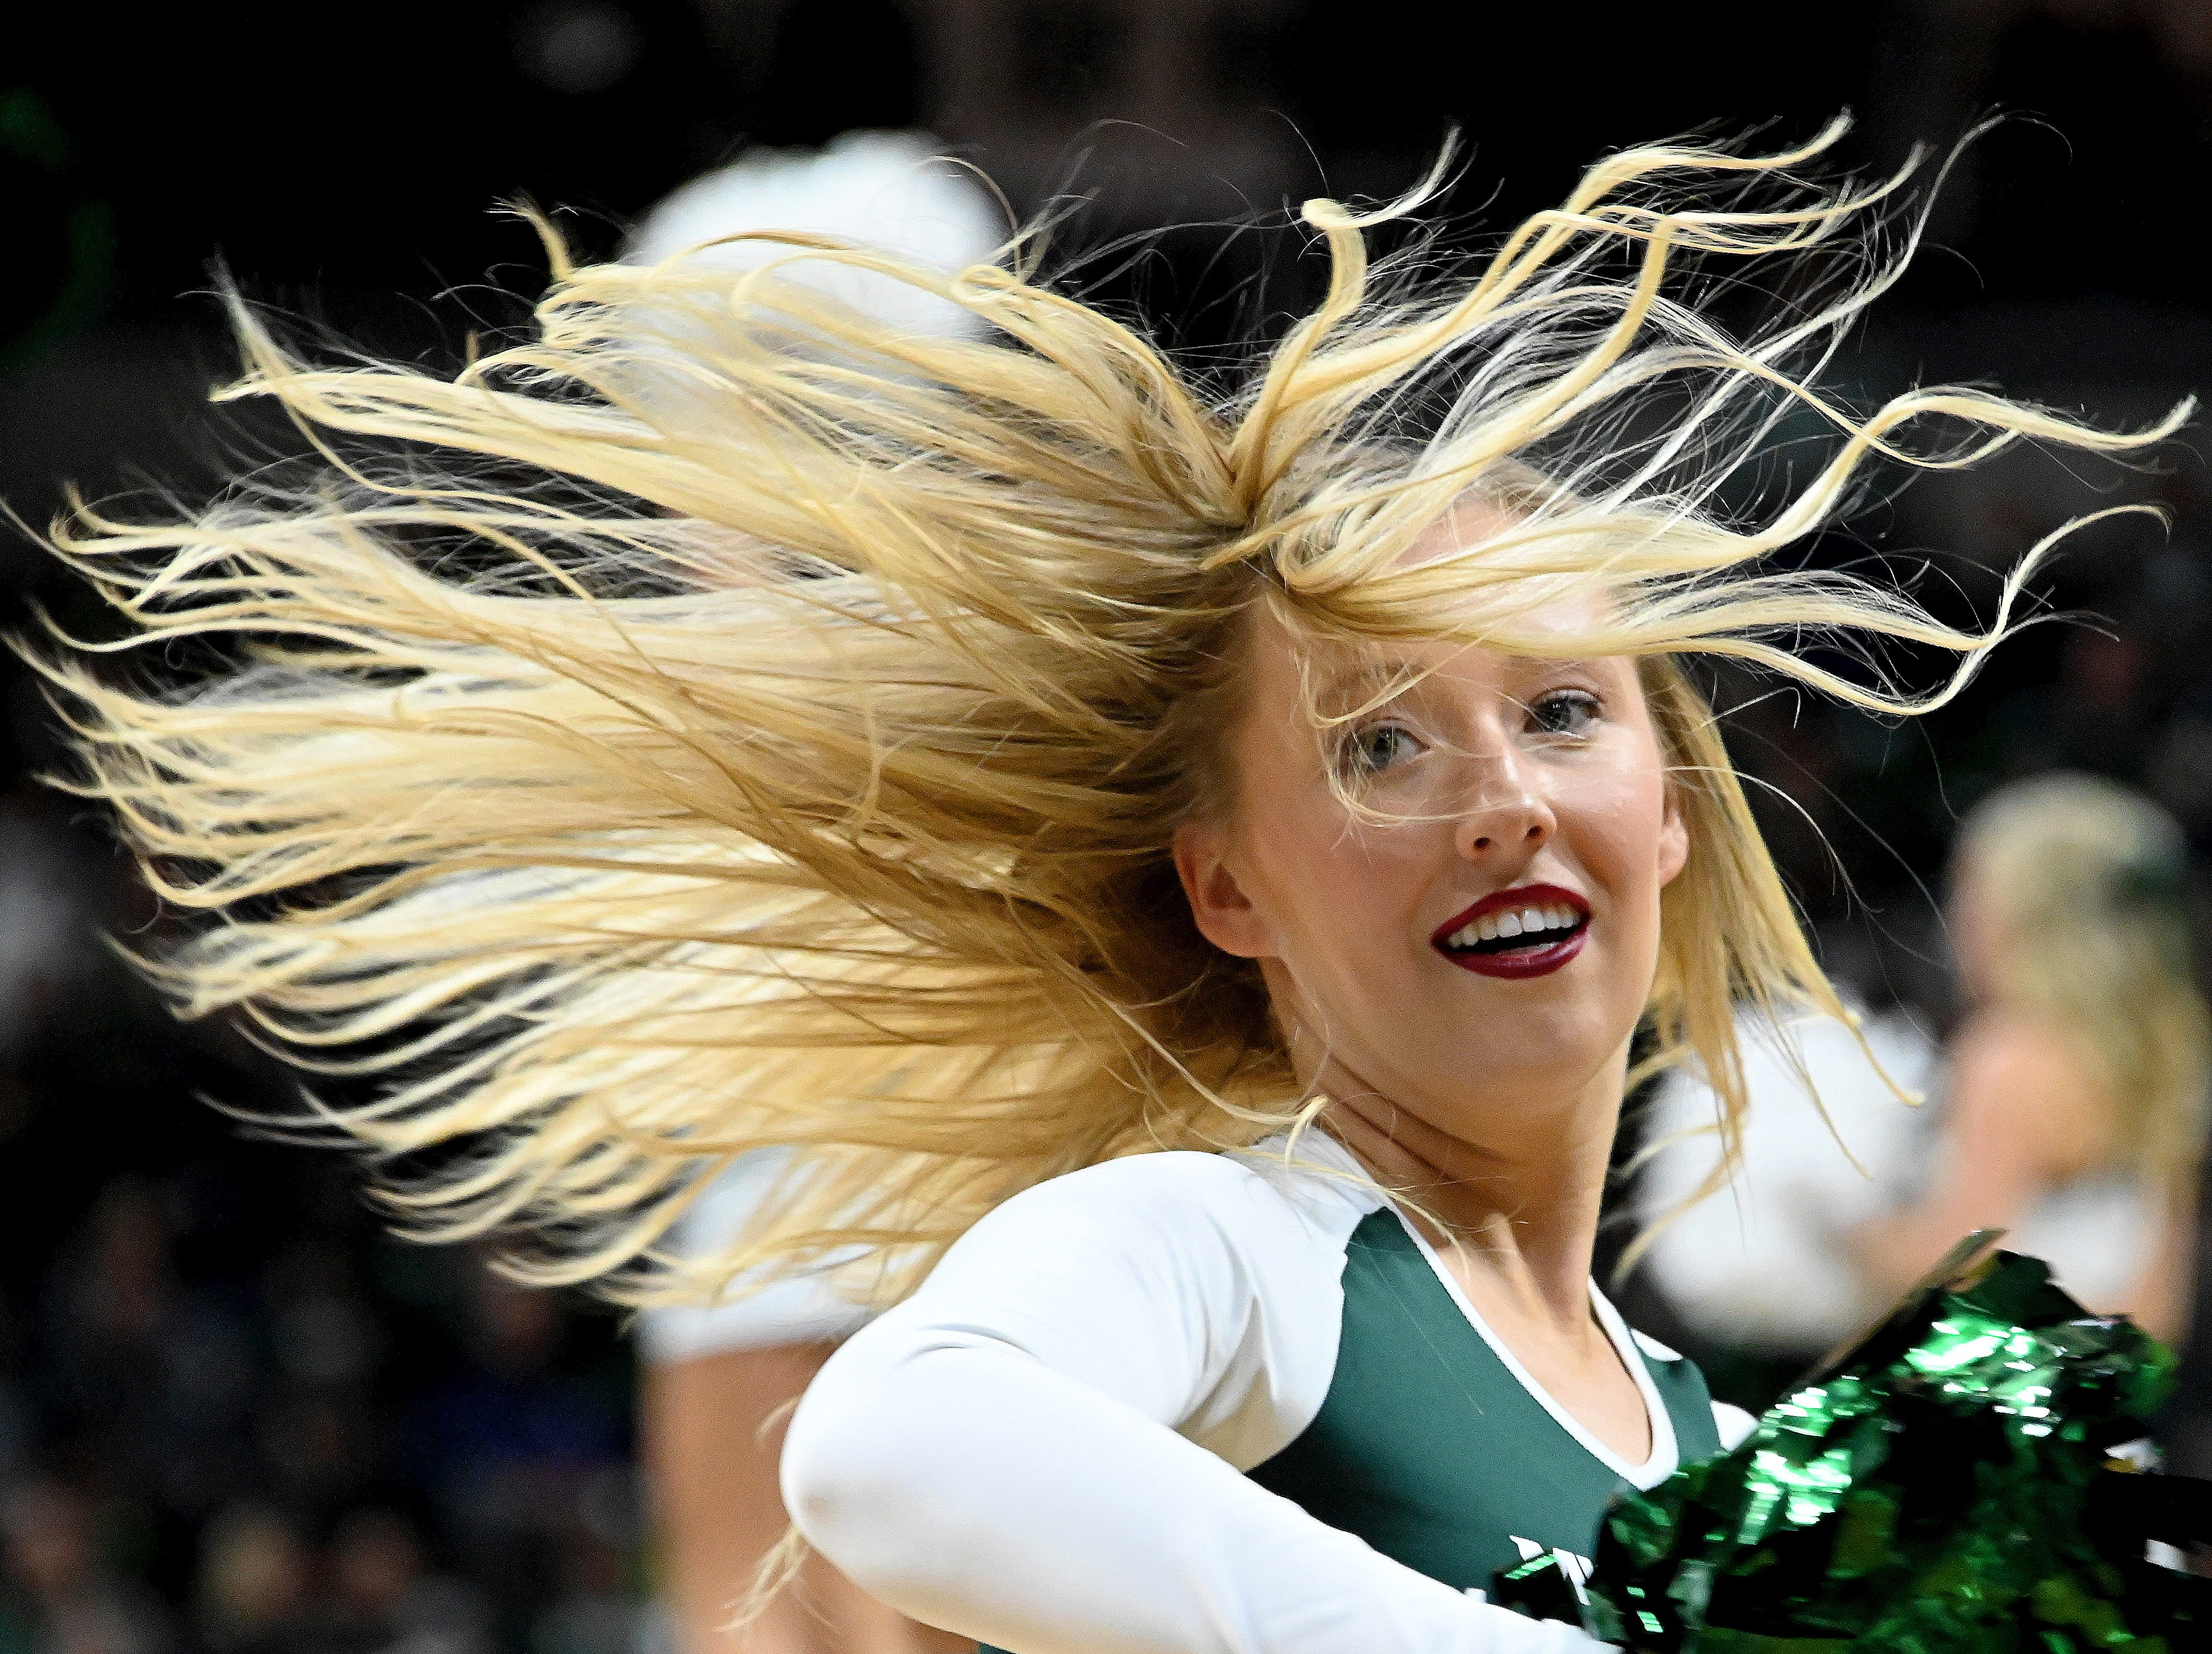 A solid twenty-point lead gave the cheer squad lots to twirl about as MSU beats Iowa 90-68, at Breslin center in East Lansing on Dec 03, 2018.